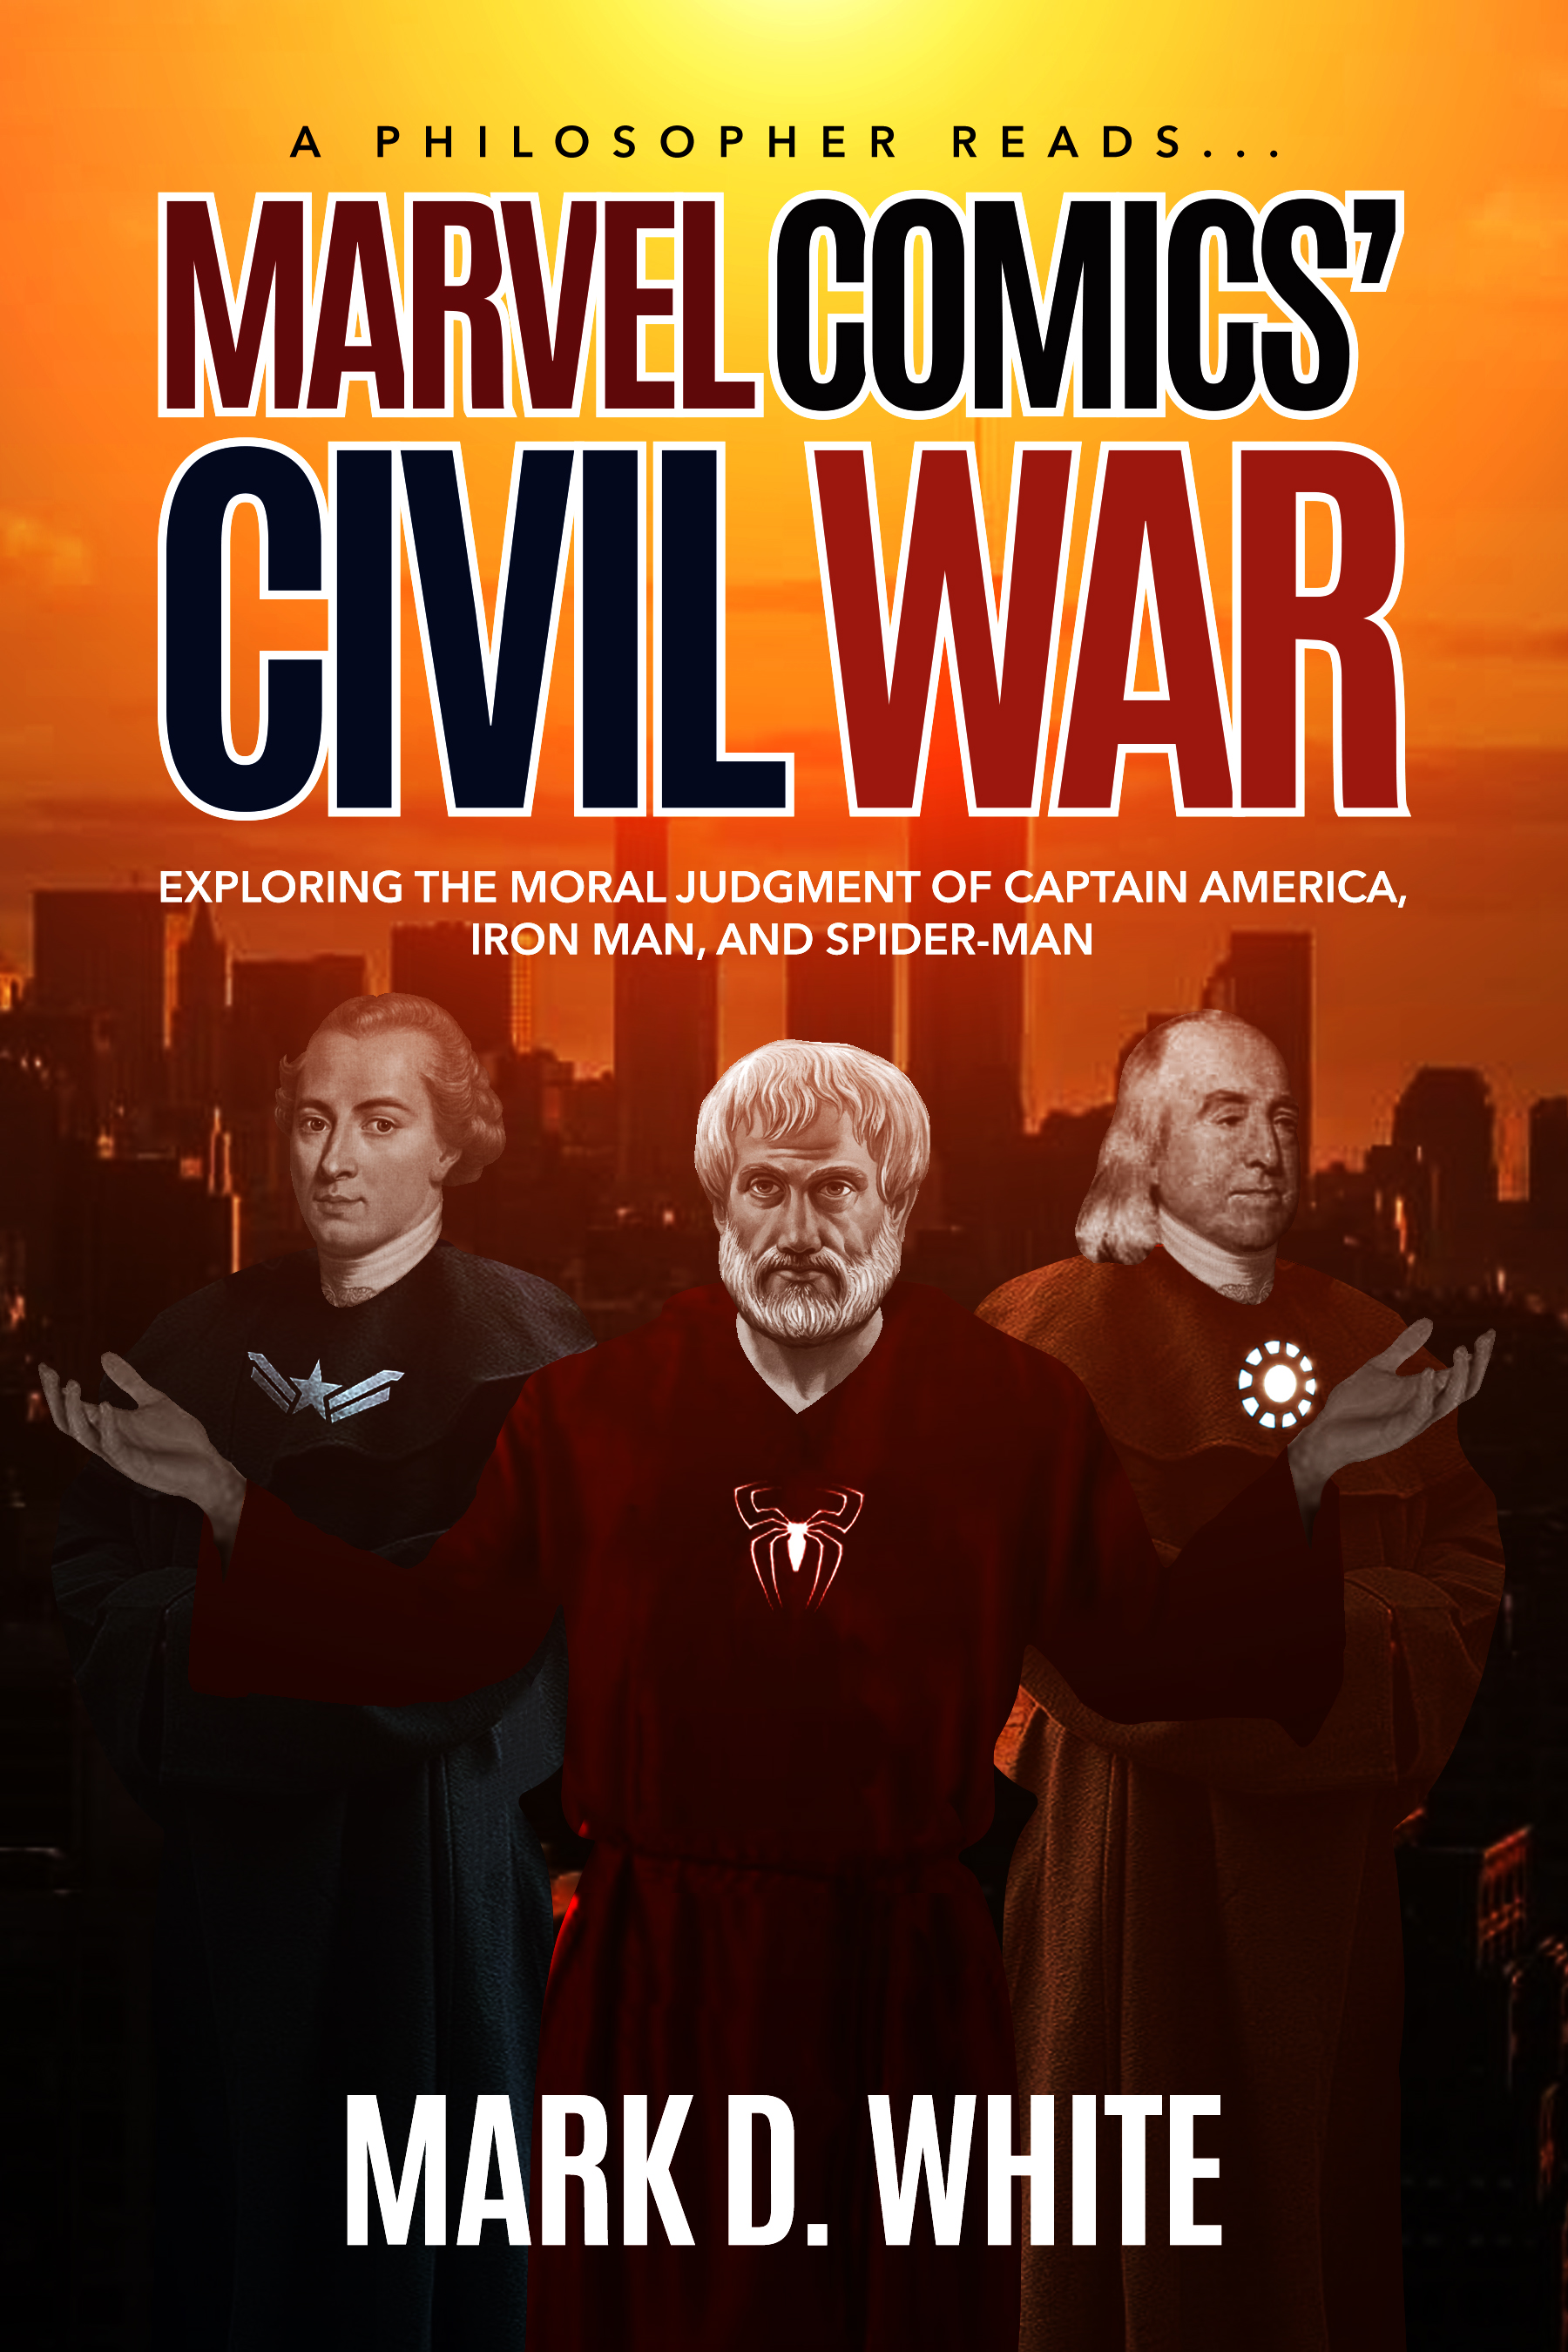 inevitability of civil war How the founders sowed the seeds of civil war by w barksdale maynard whether america's founders could have sown seeds of a more perfect union without dooming a.